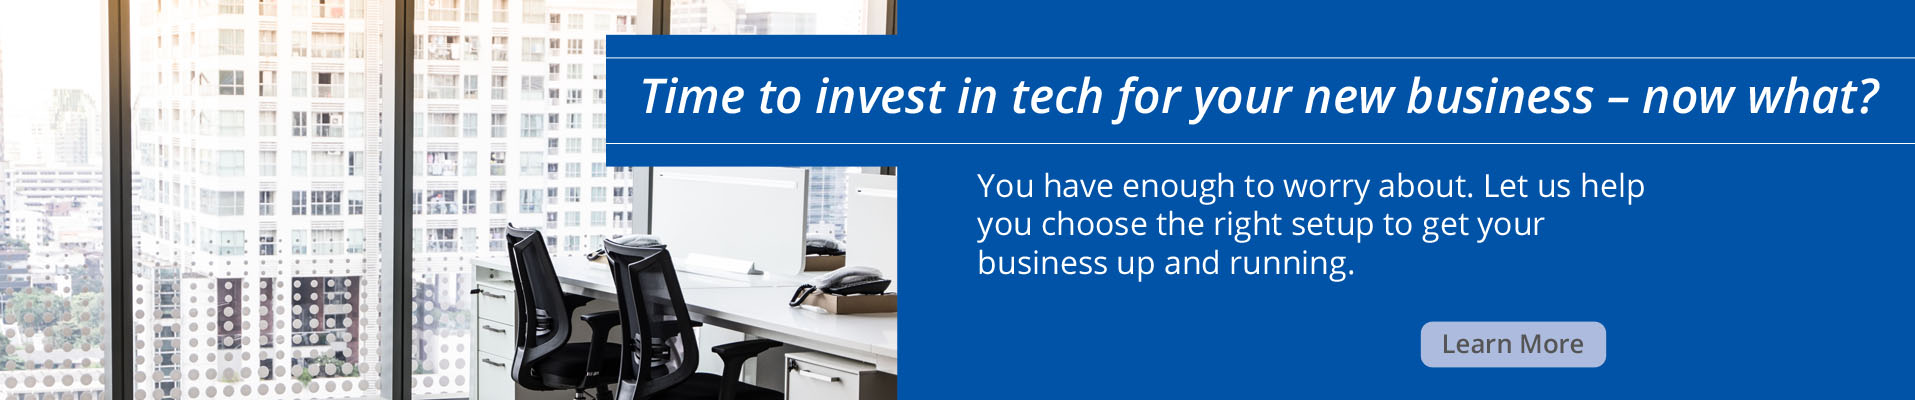 Time to Invest in Tech for your new business - Now What?